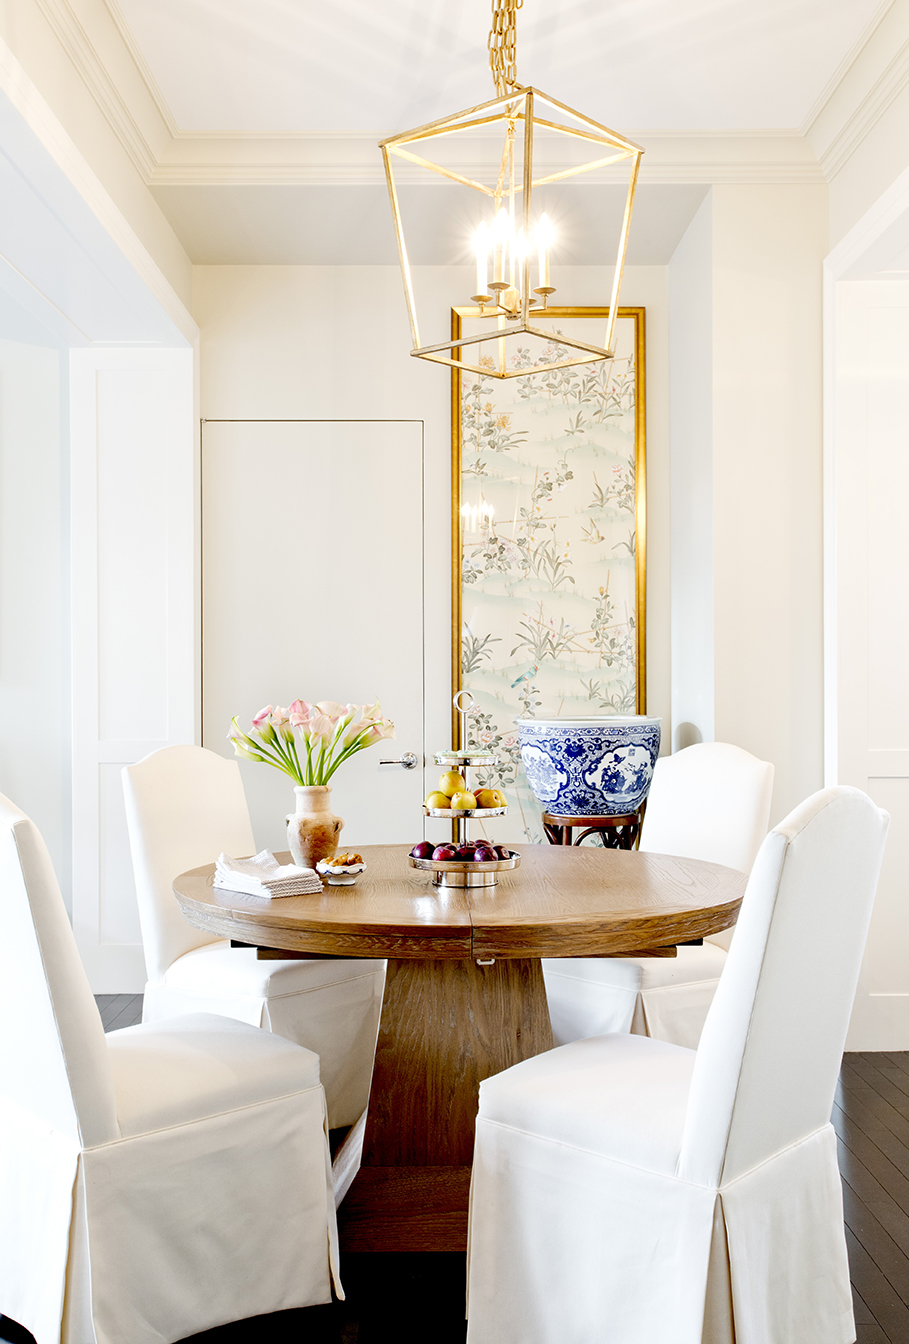 WHIW78_PAMELADAILEYDESIGN-TINY-DINING-ROOM.jpg